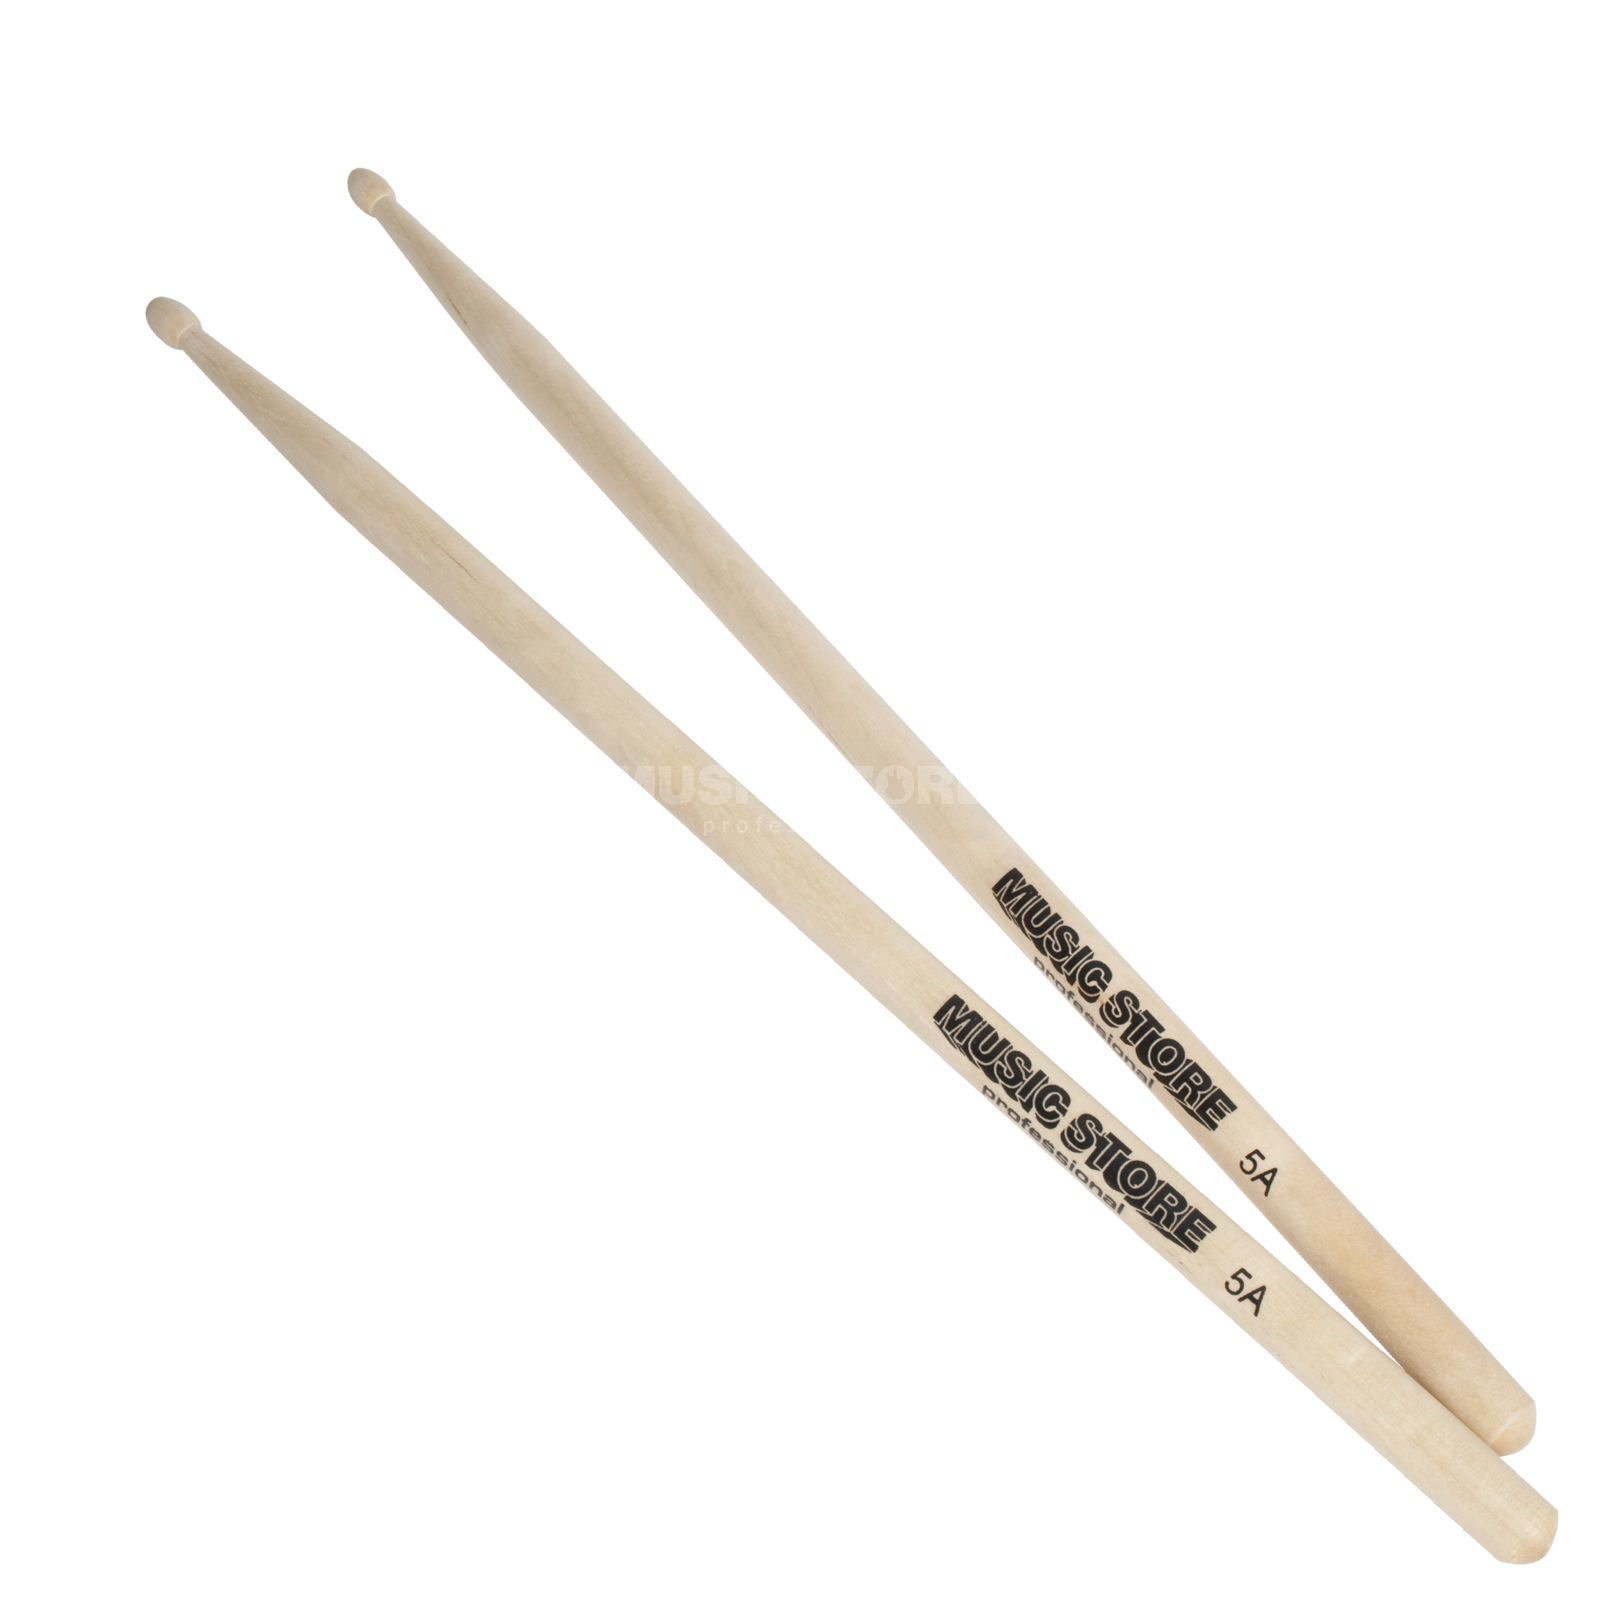 MUSIC STORE 5A Maple Sticks, Wood Tip Produktbild